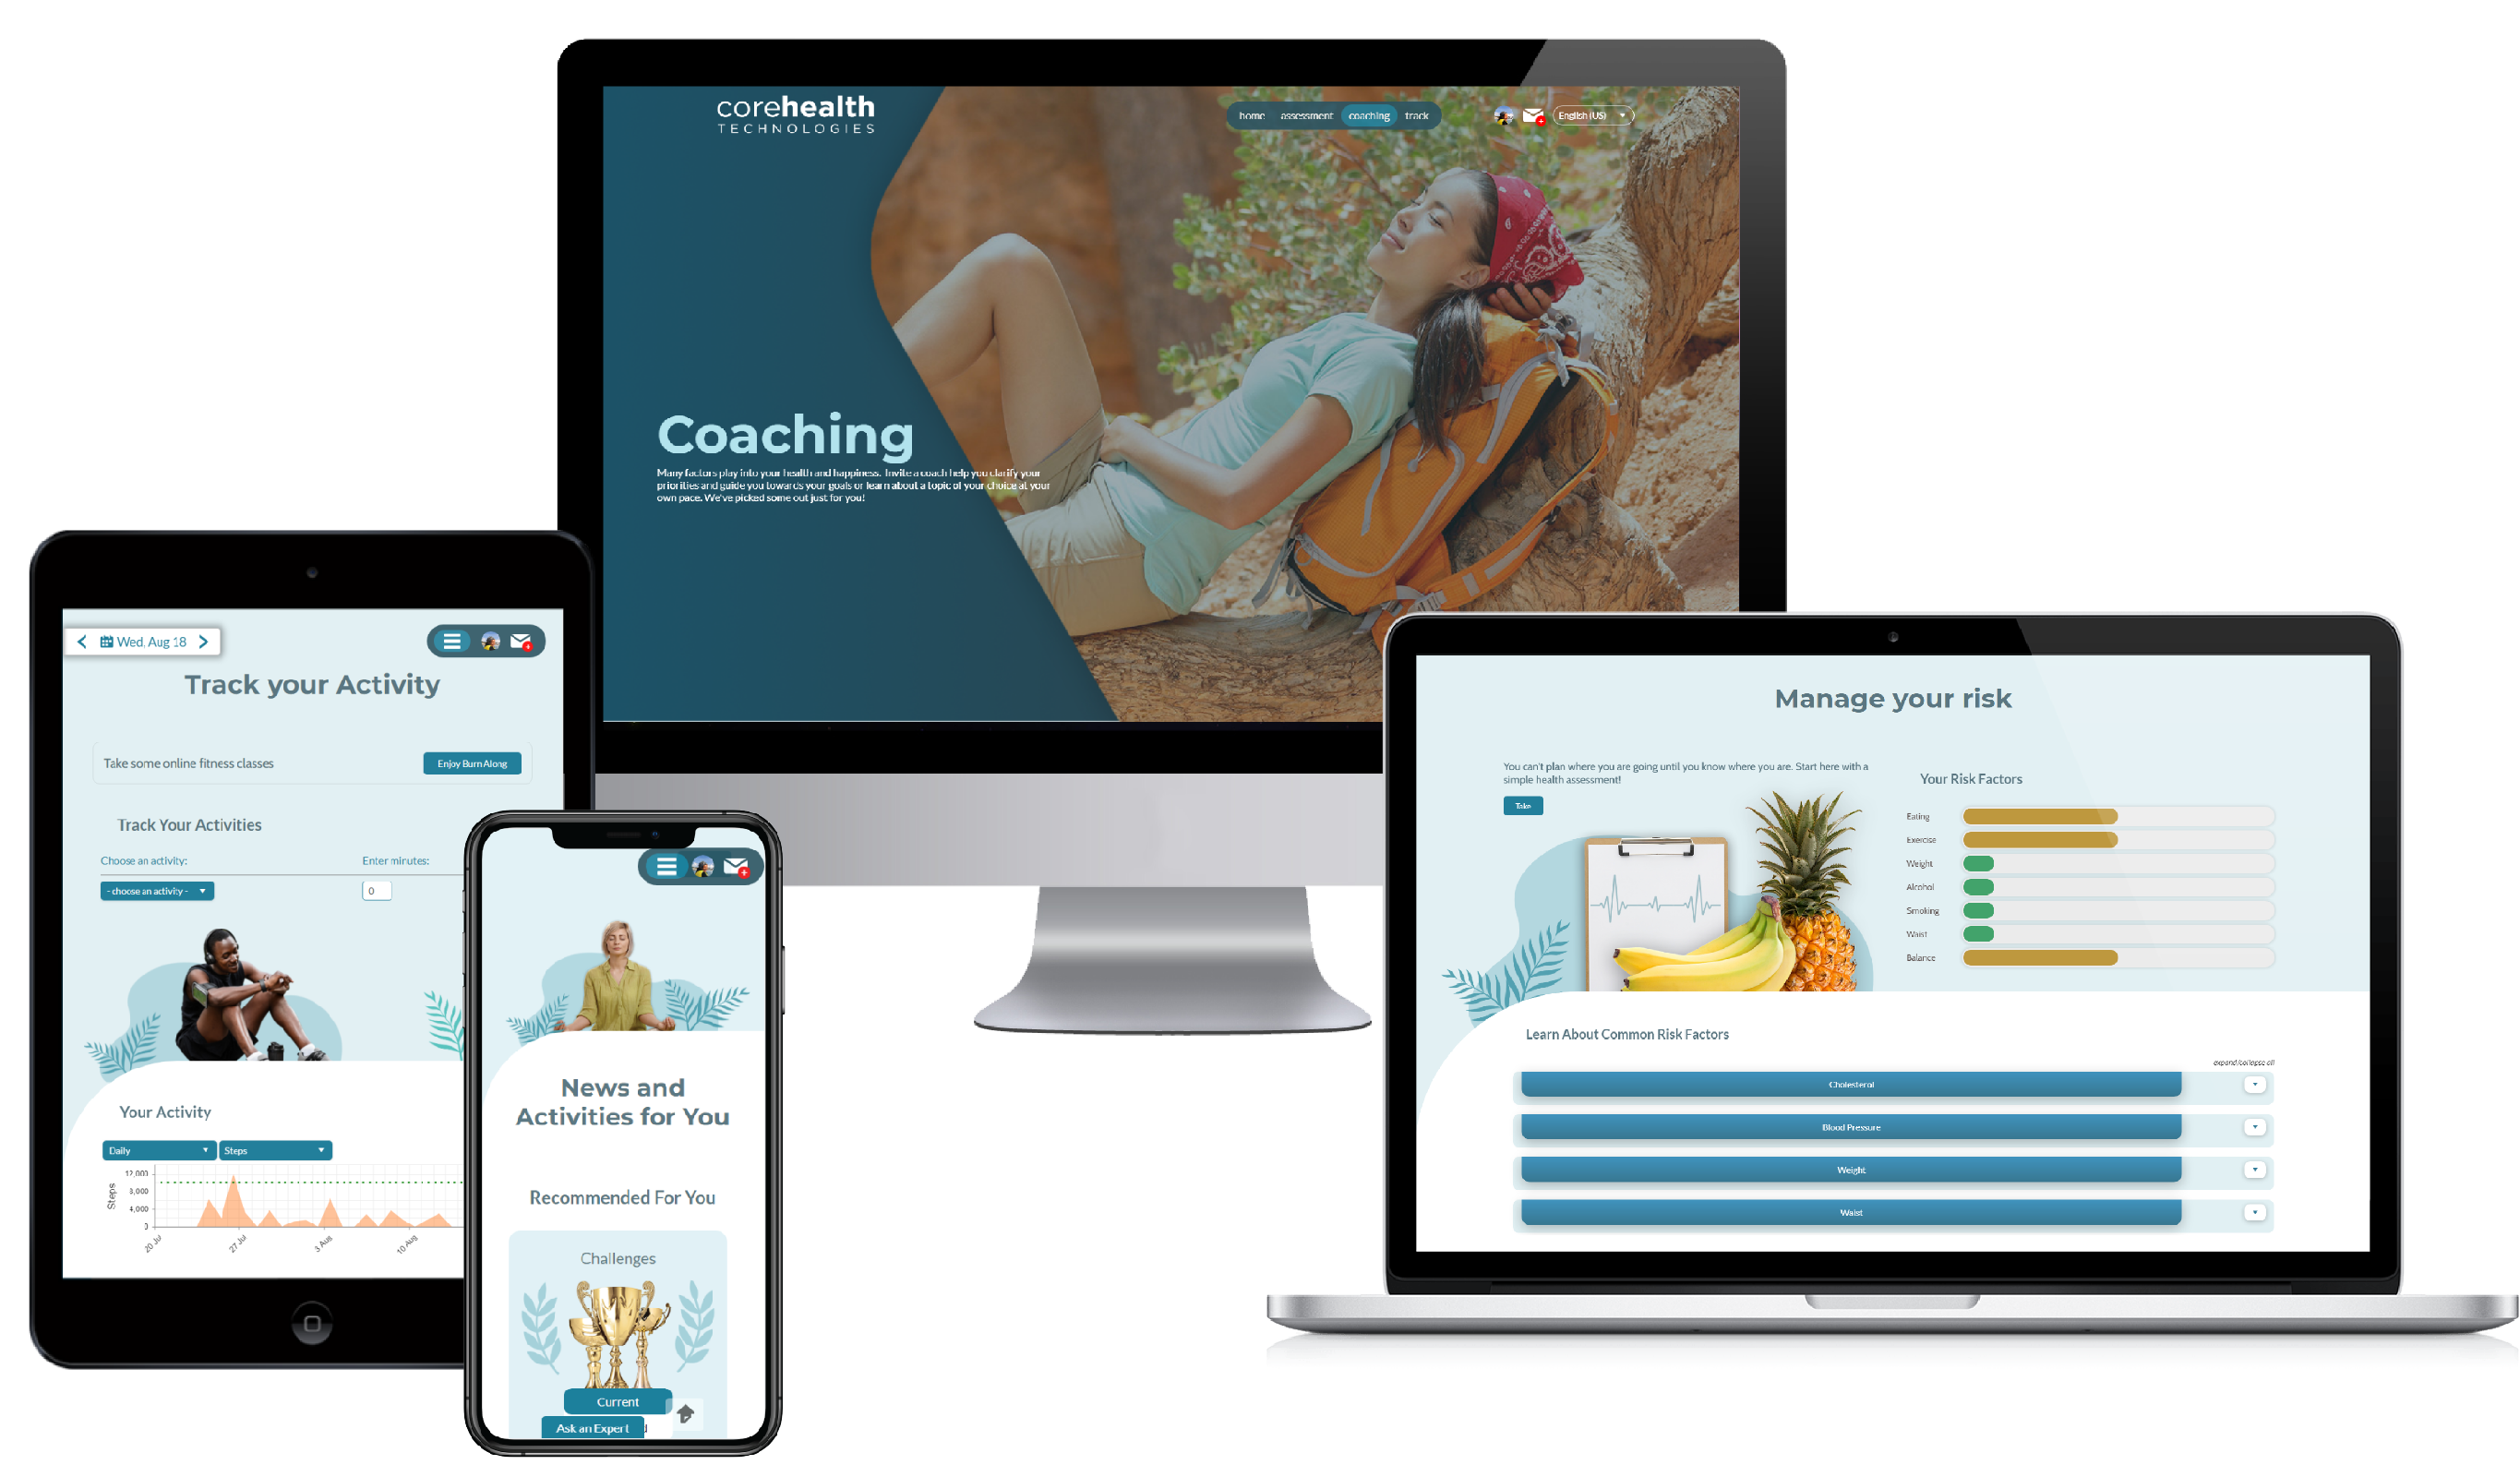 CoreHealth supports Coaching Programs, Challenges, Activity Tracking, HRA's and more!